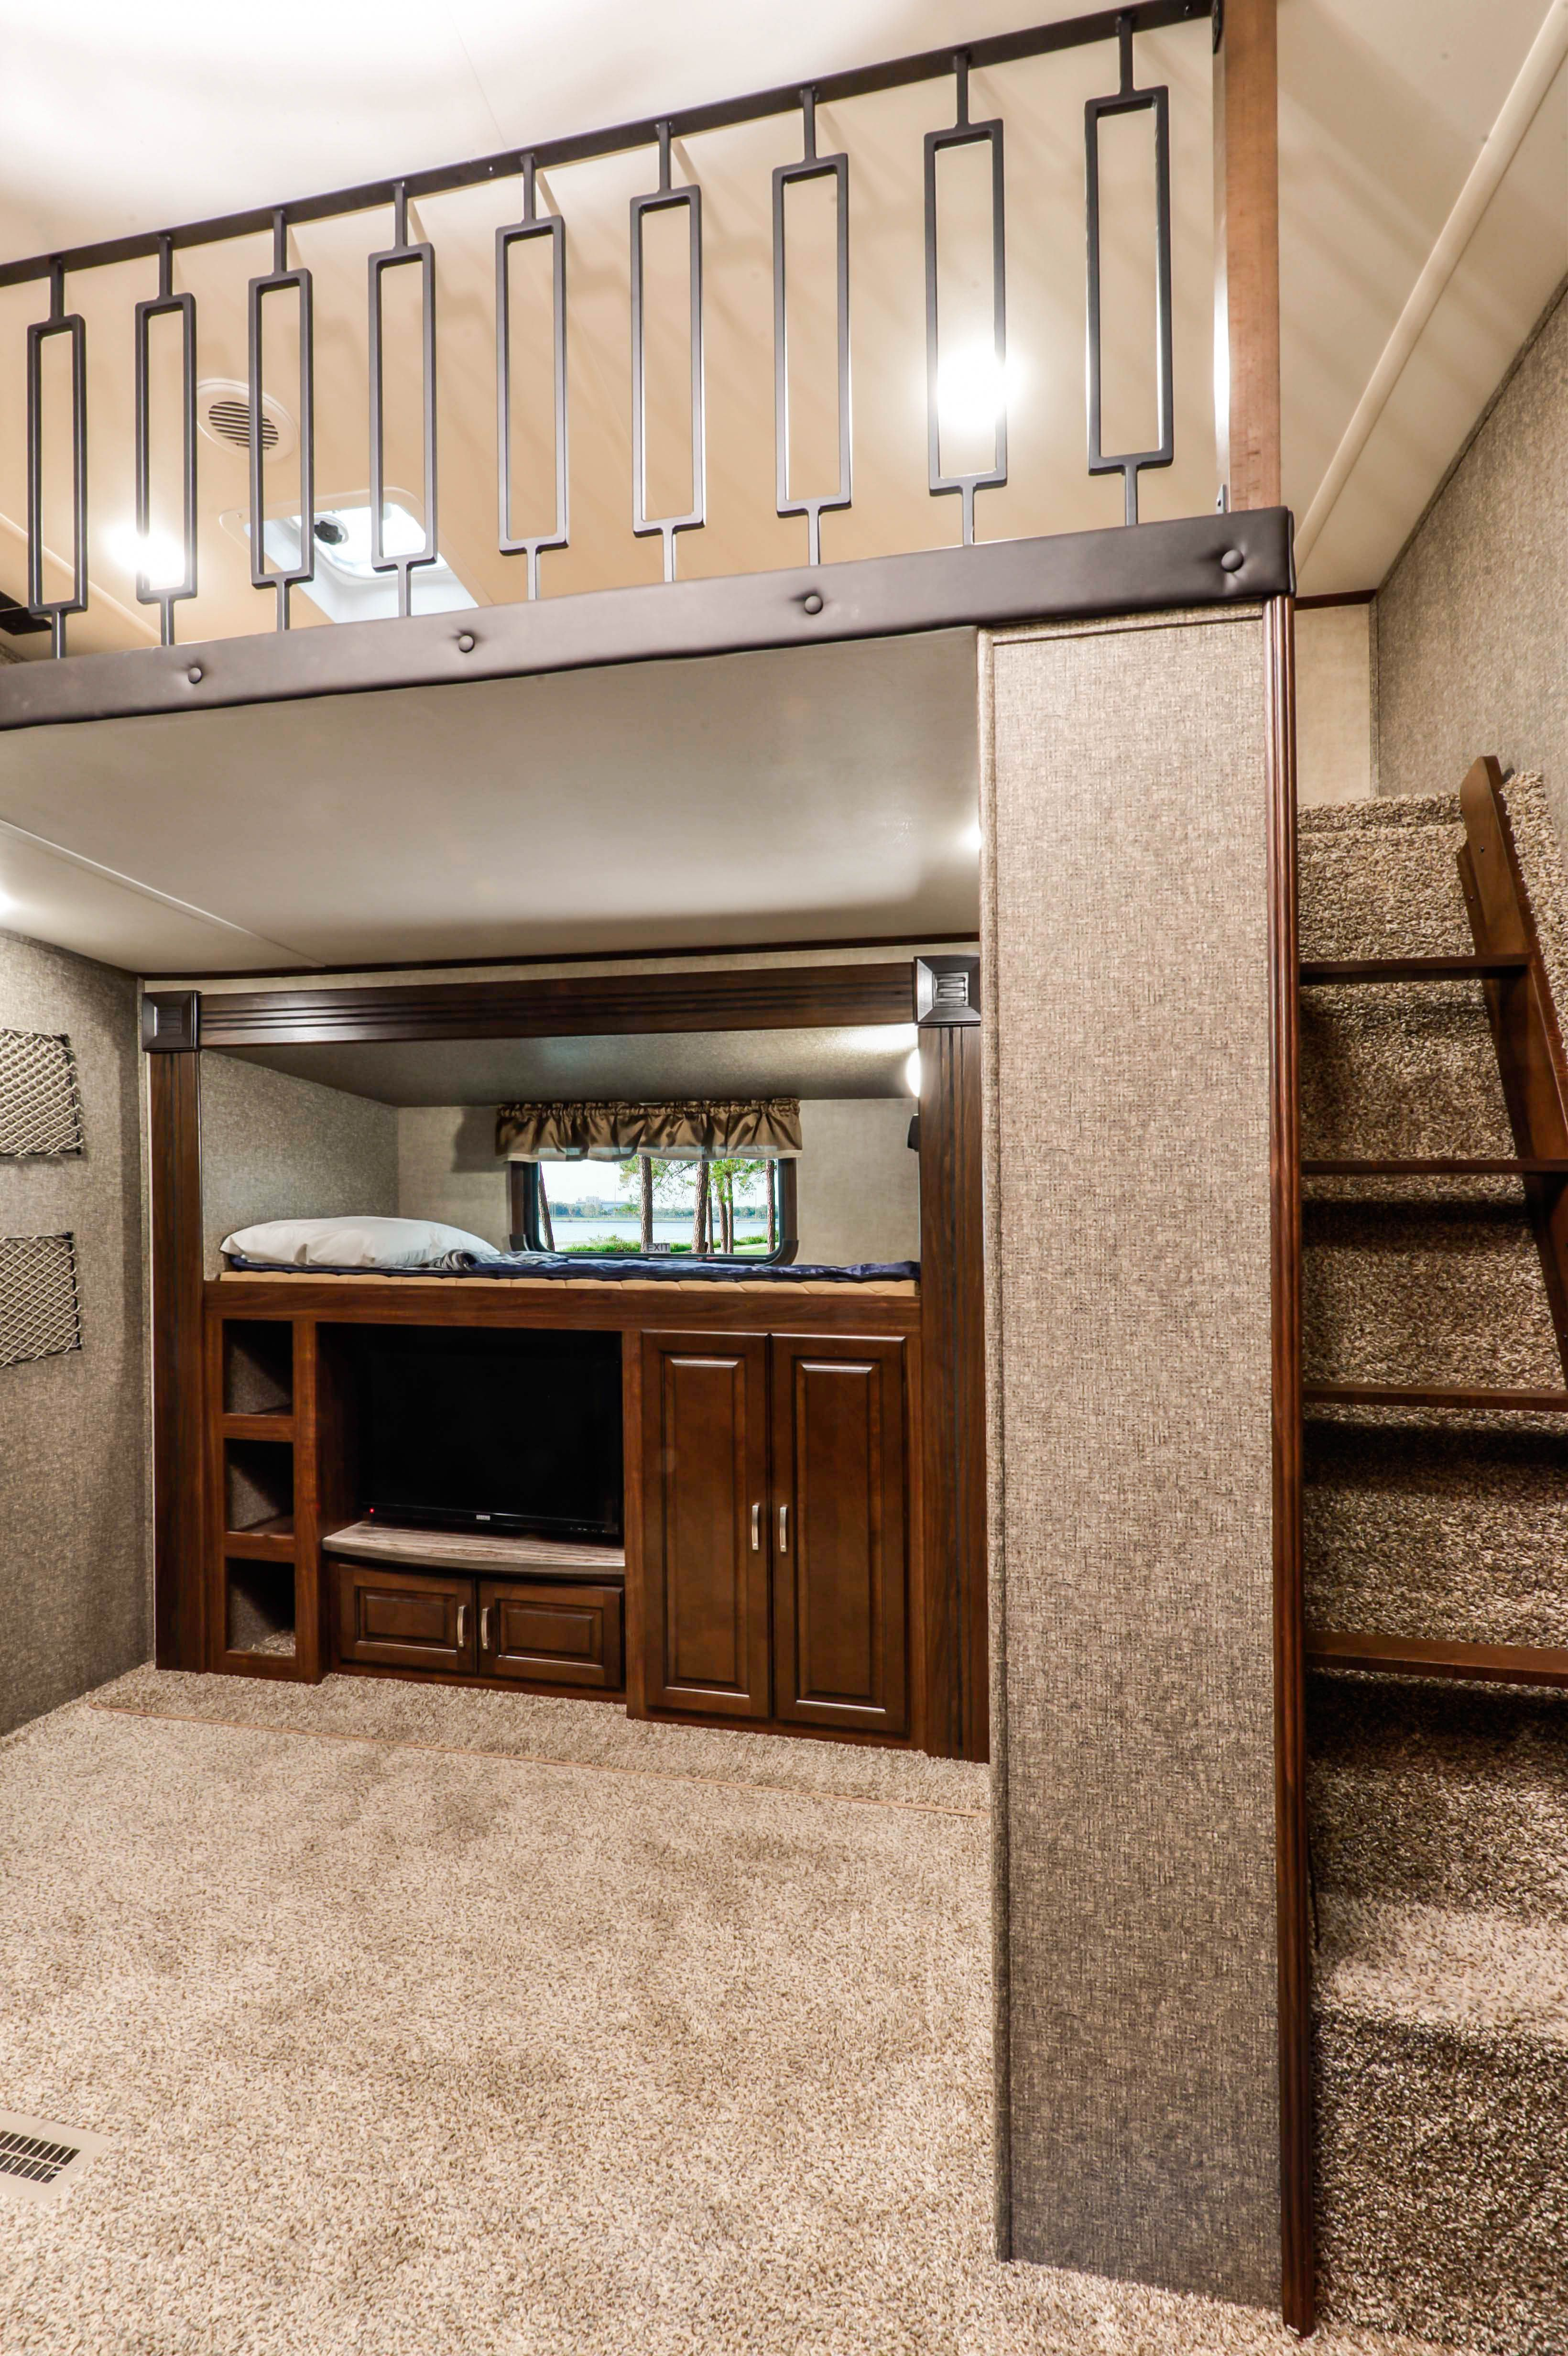 Check out this red hot seller! The Gateway 3800 RLB